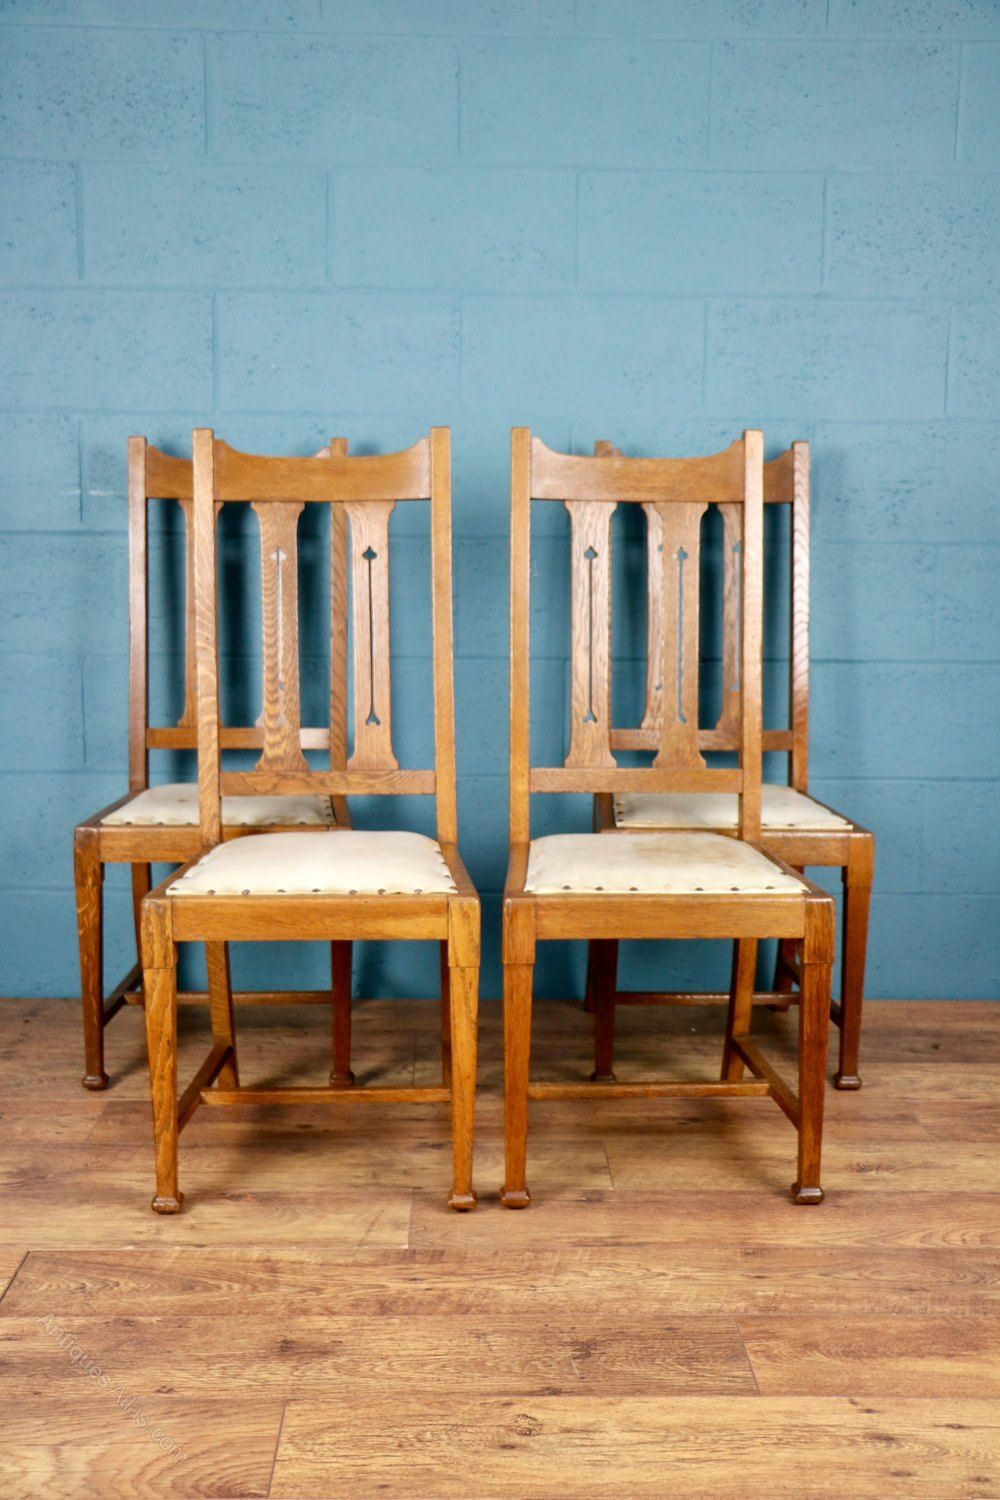 4 X Arts And Crafts Oak Dining Chairs Antiques Atlas Arts And Crafts Interiors Arts And Crafts Furniture Art And Craft Videos